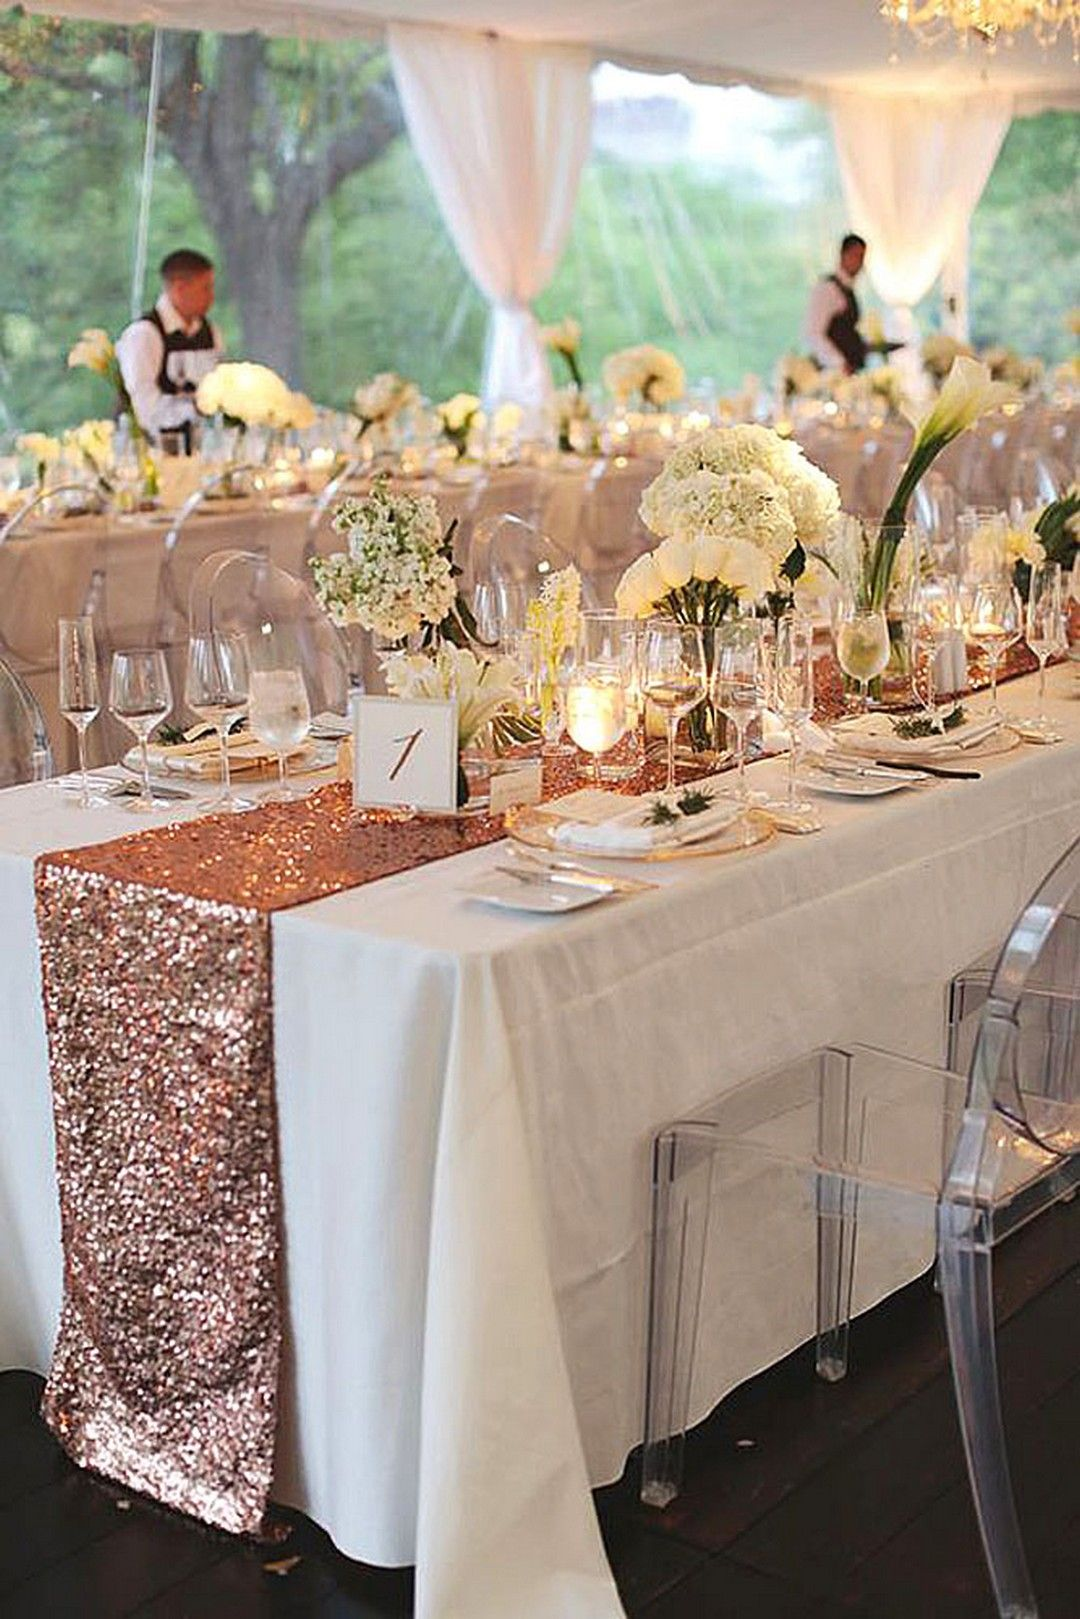 Awesome diy wedding decoration ideas to save budget for your big